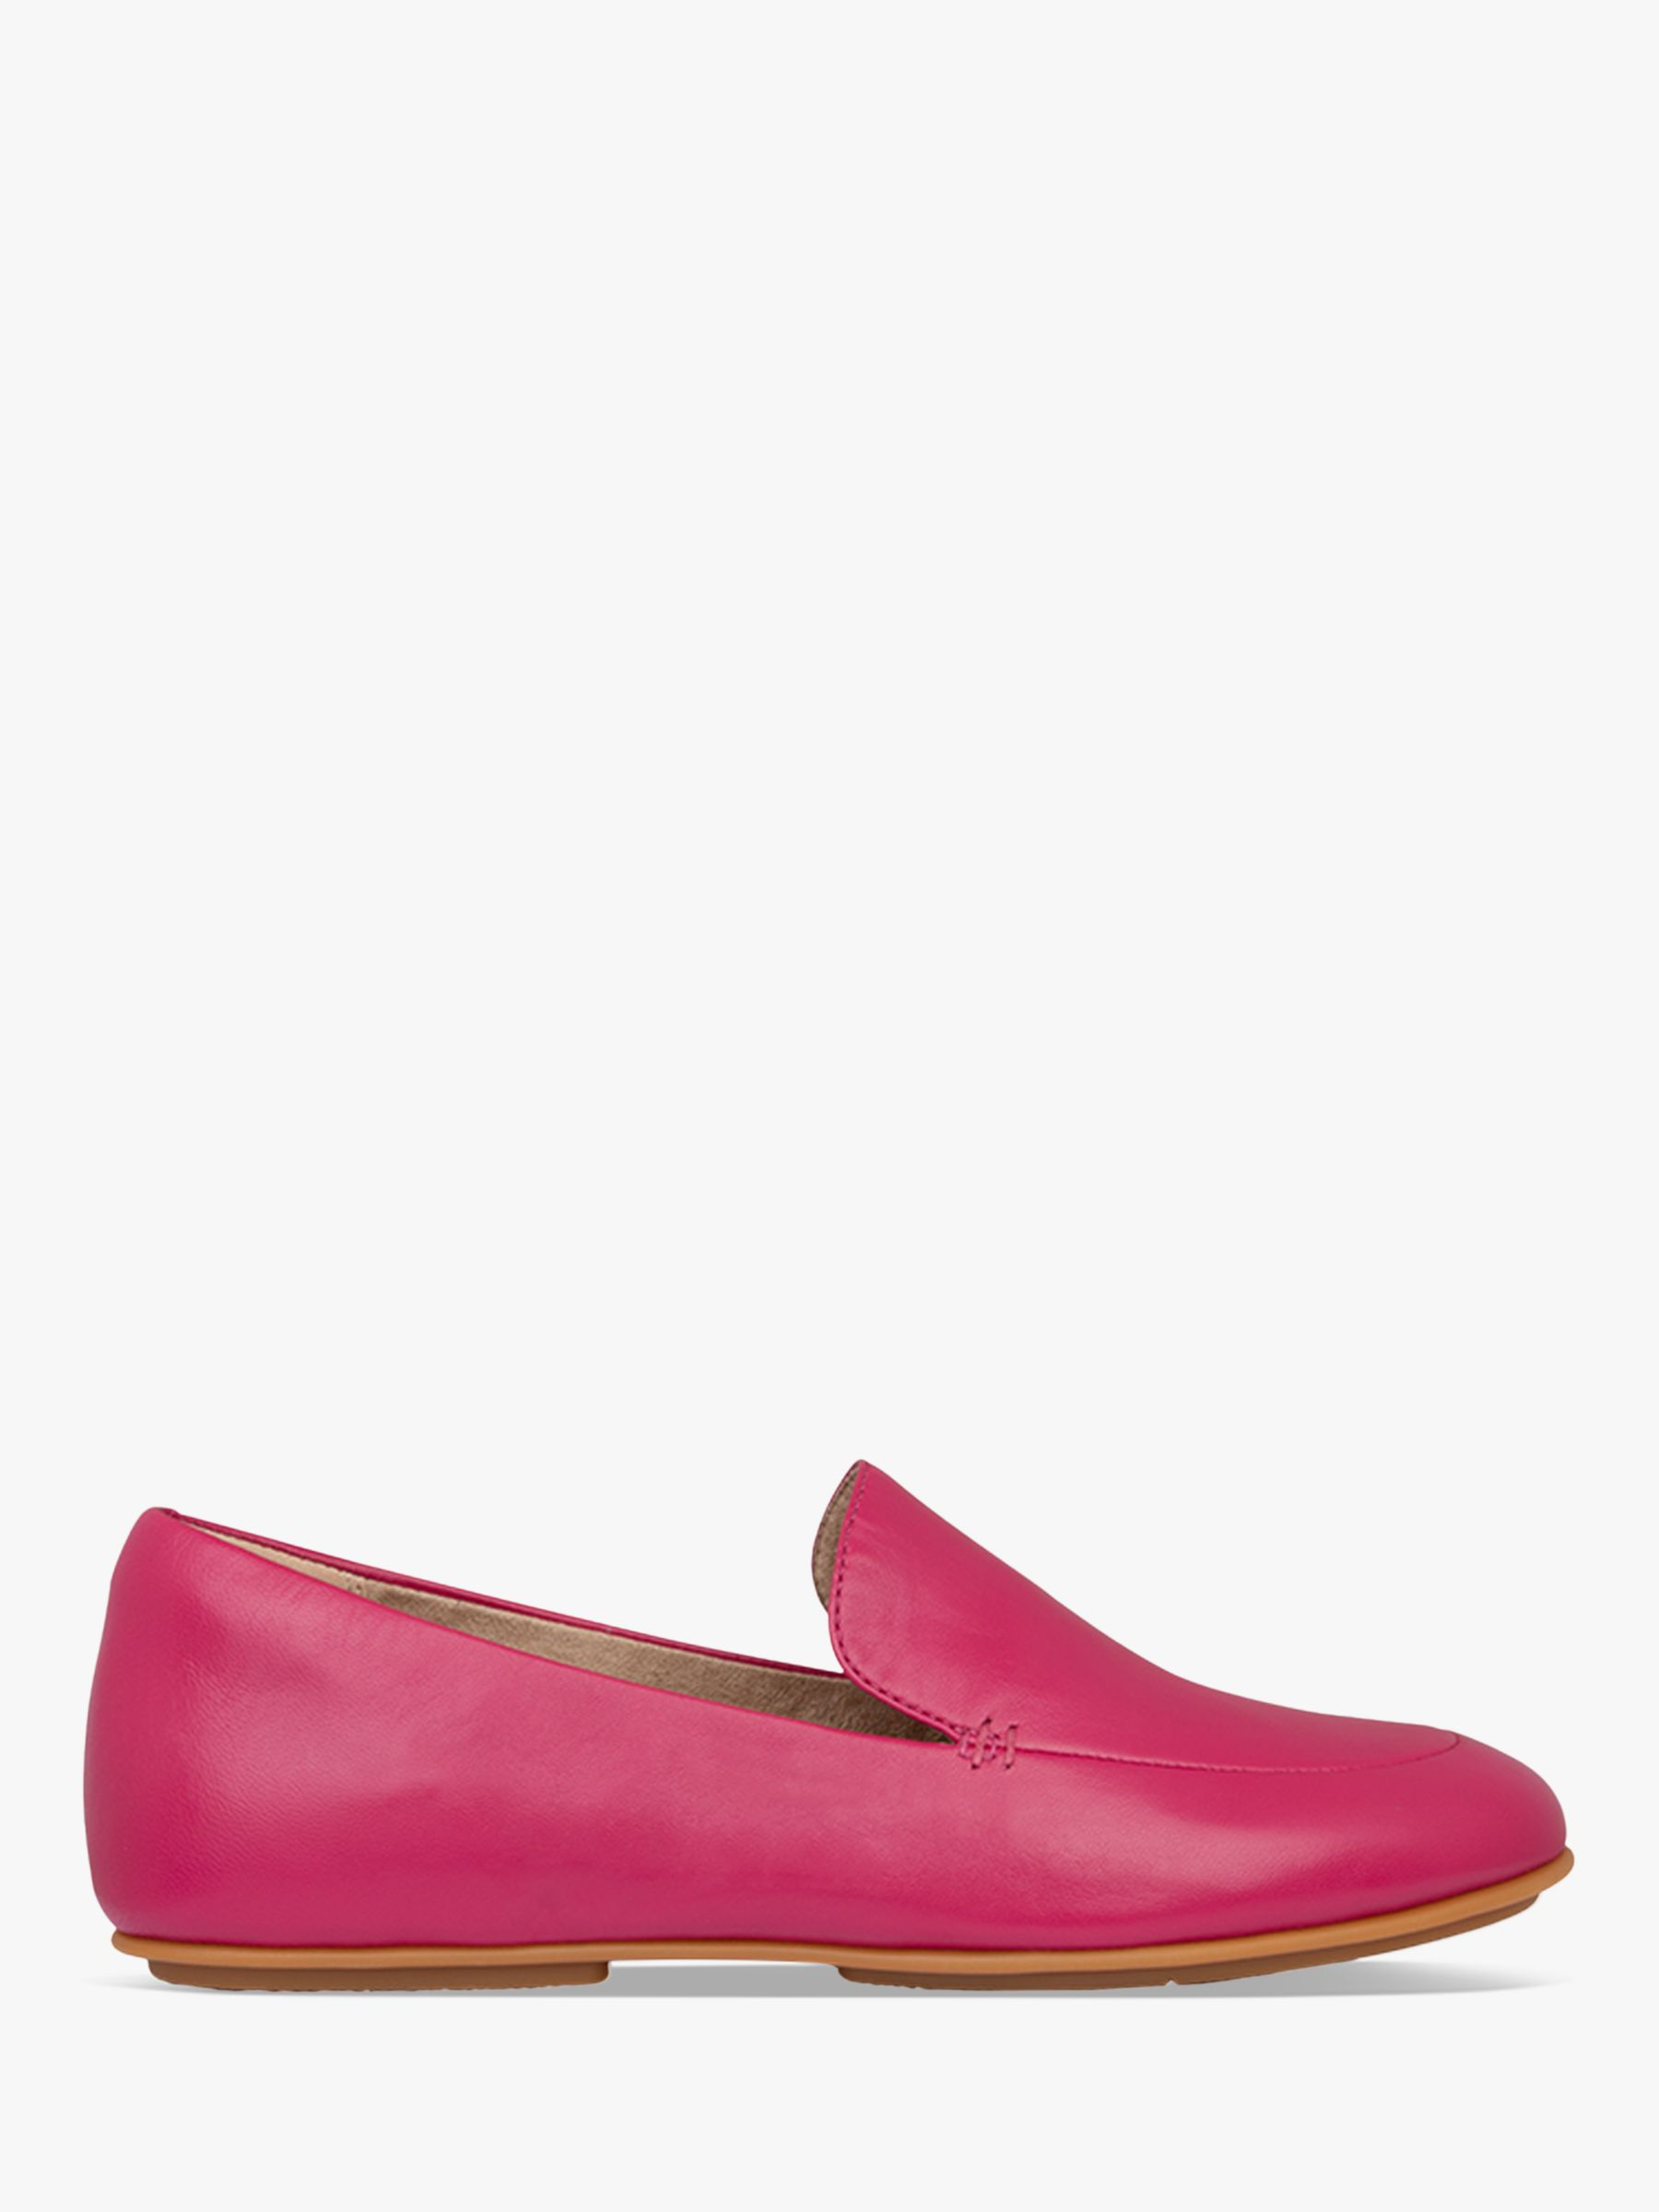 Fitflop FitFlop Lena Leather Loafers